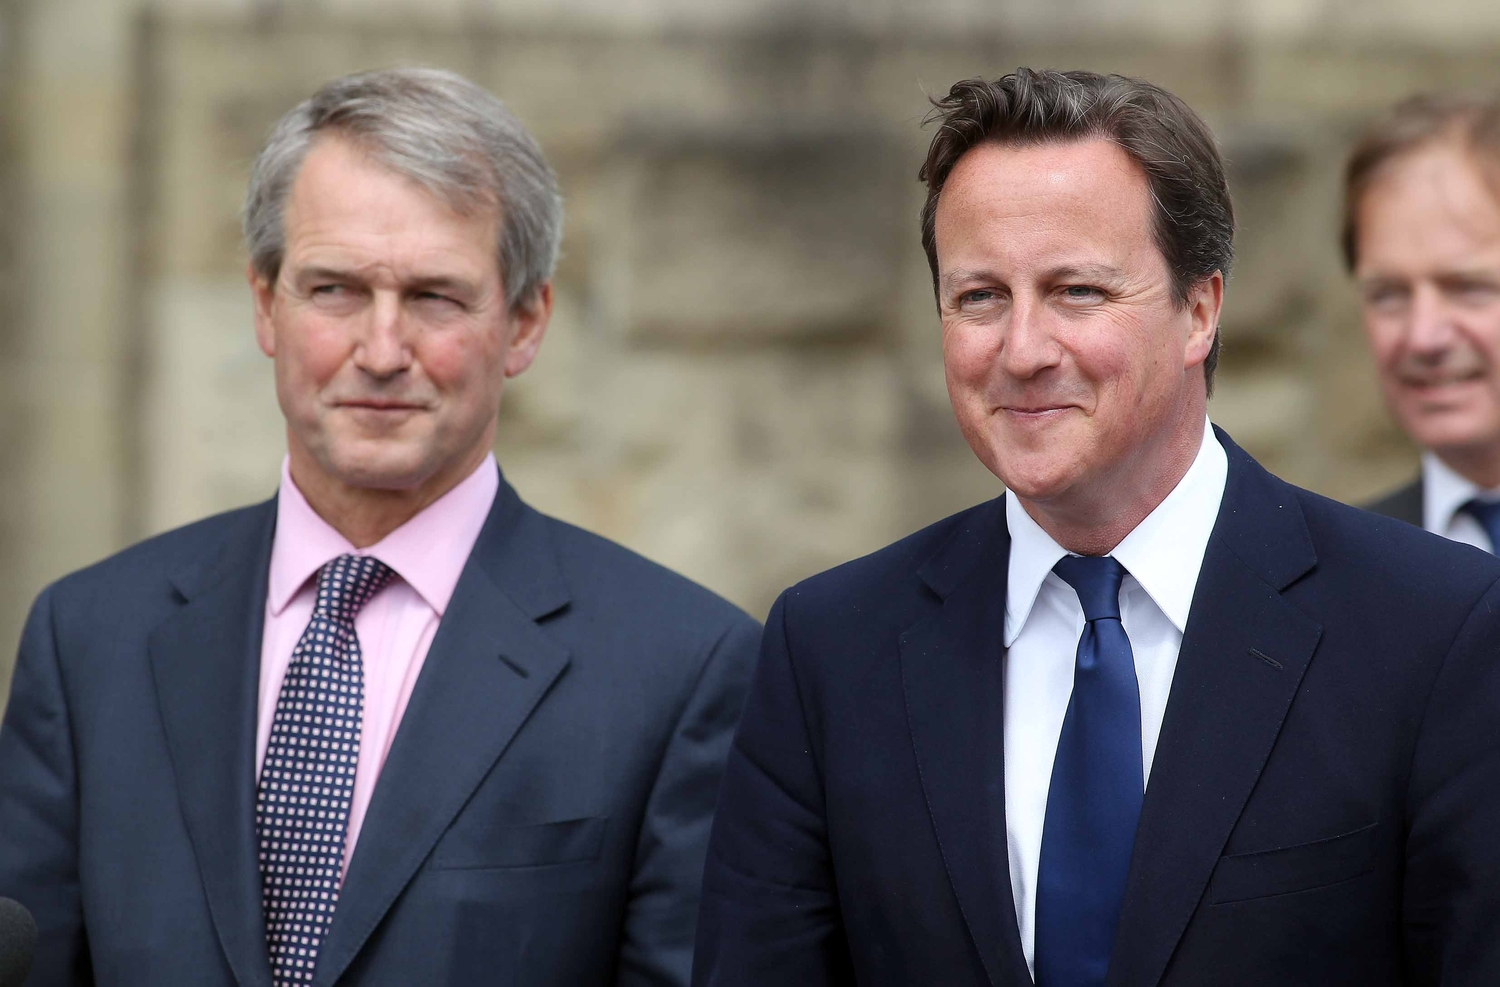 Owen Paterson and David Cameron